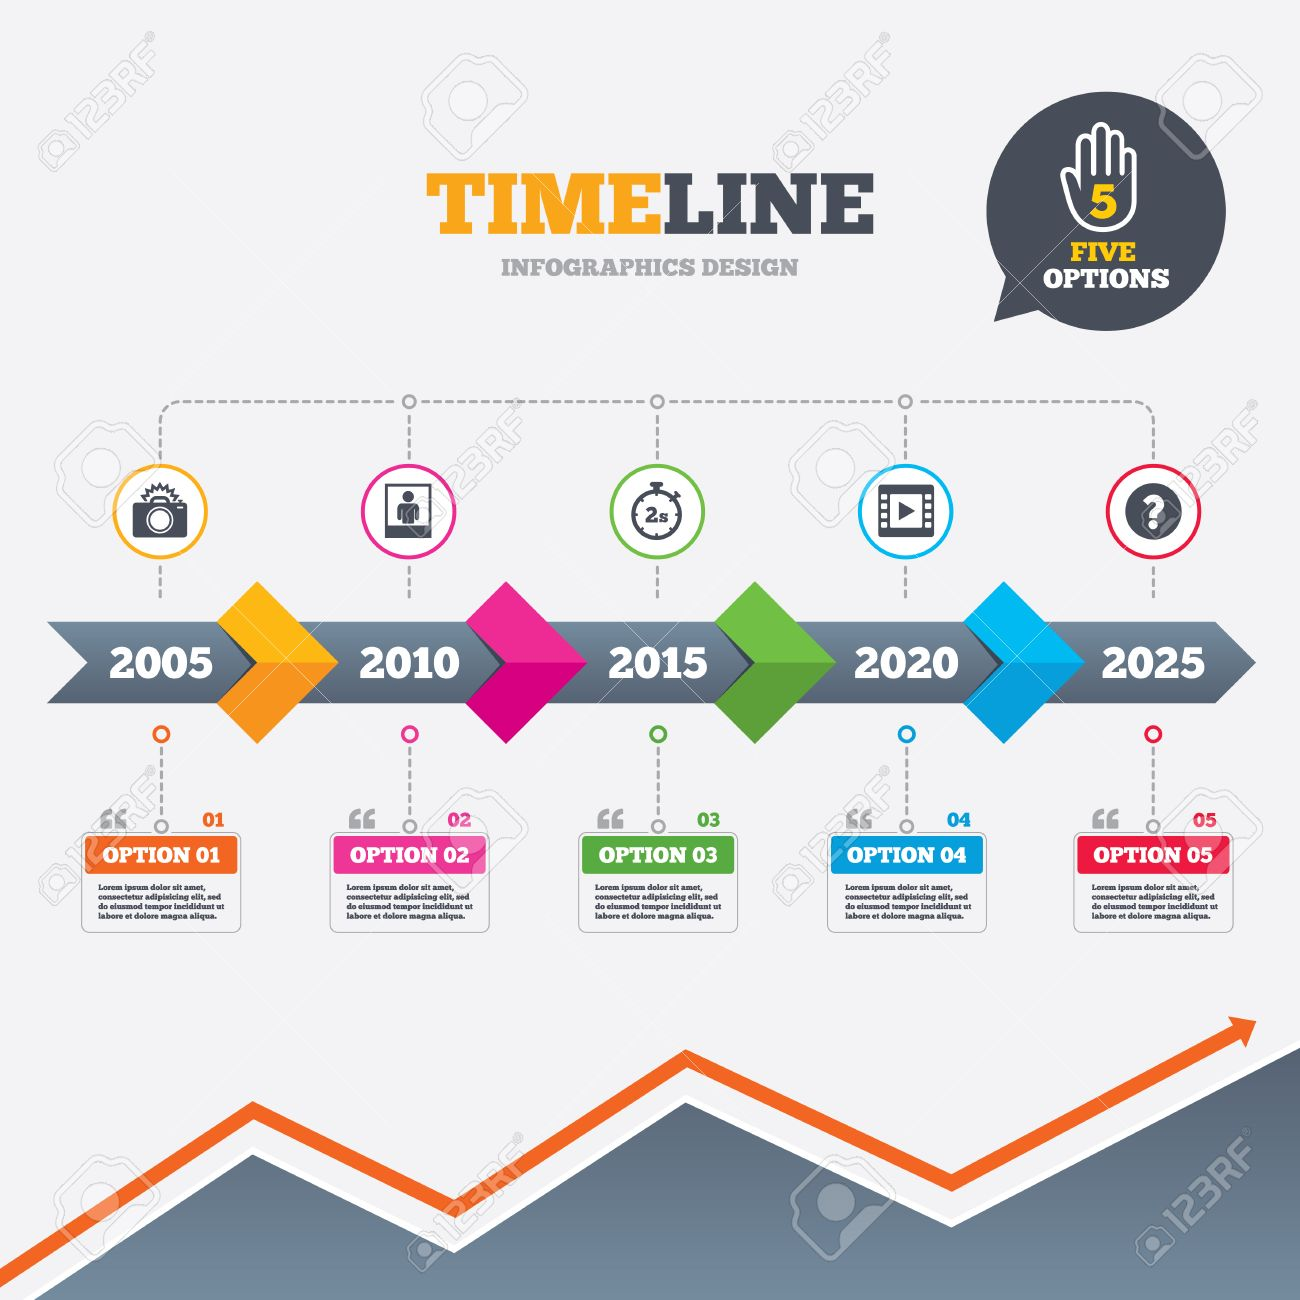 timeline infographic with arrows. photo camera icon. flash light